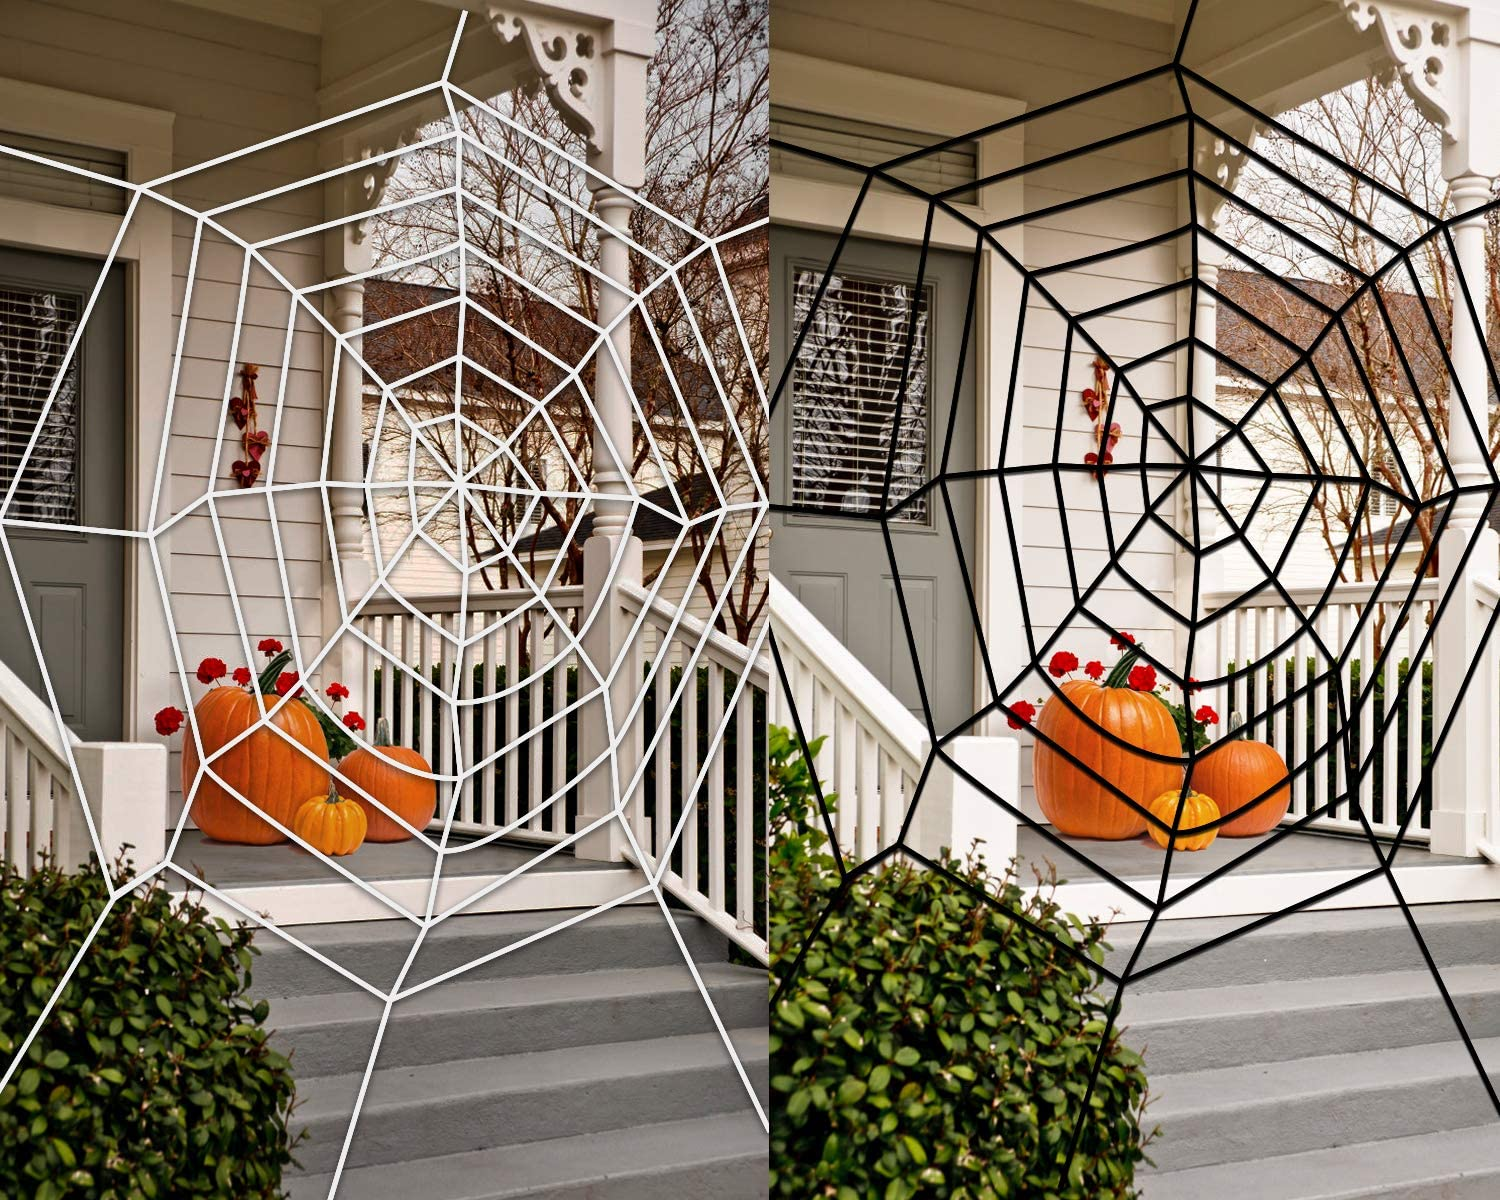 2 Pack Giant Spider Web Halloween Decorations, 11ft White and Black Spider Web Set,Outdoor Yard Haunted House Party Decor Supplies